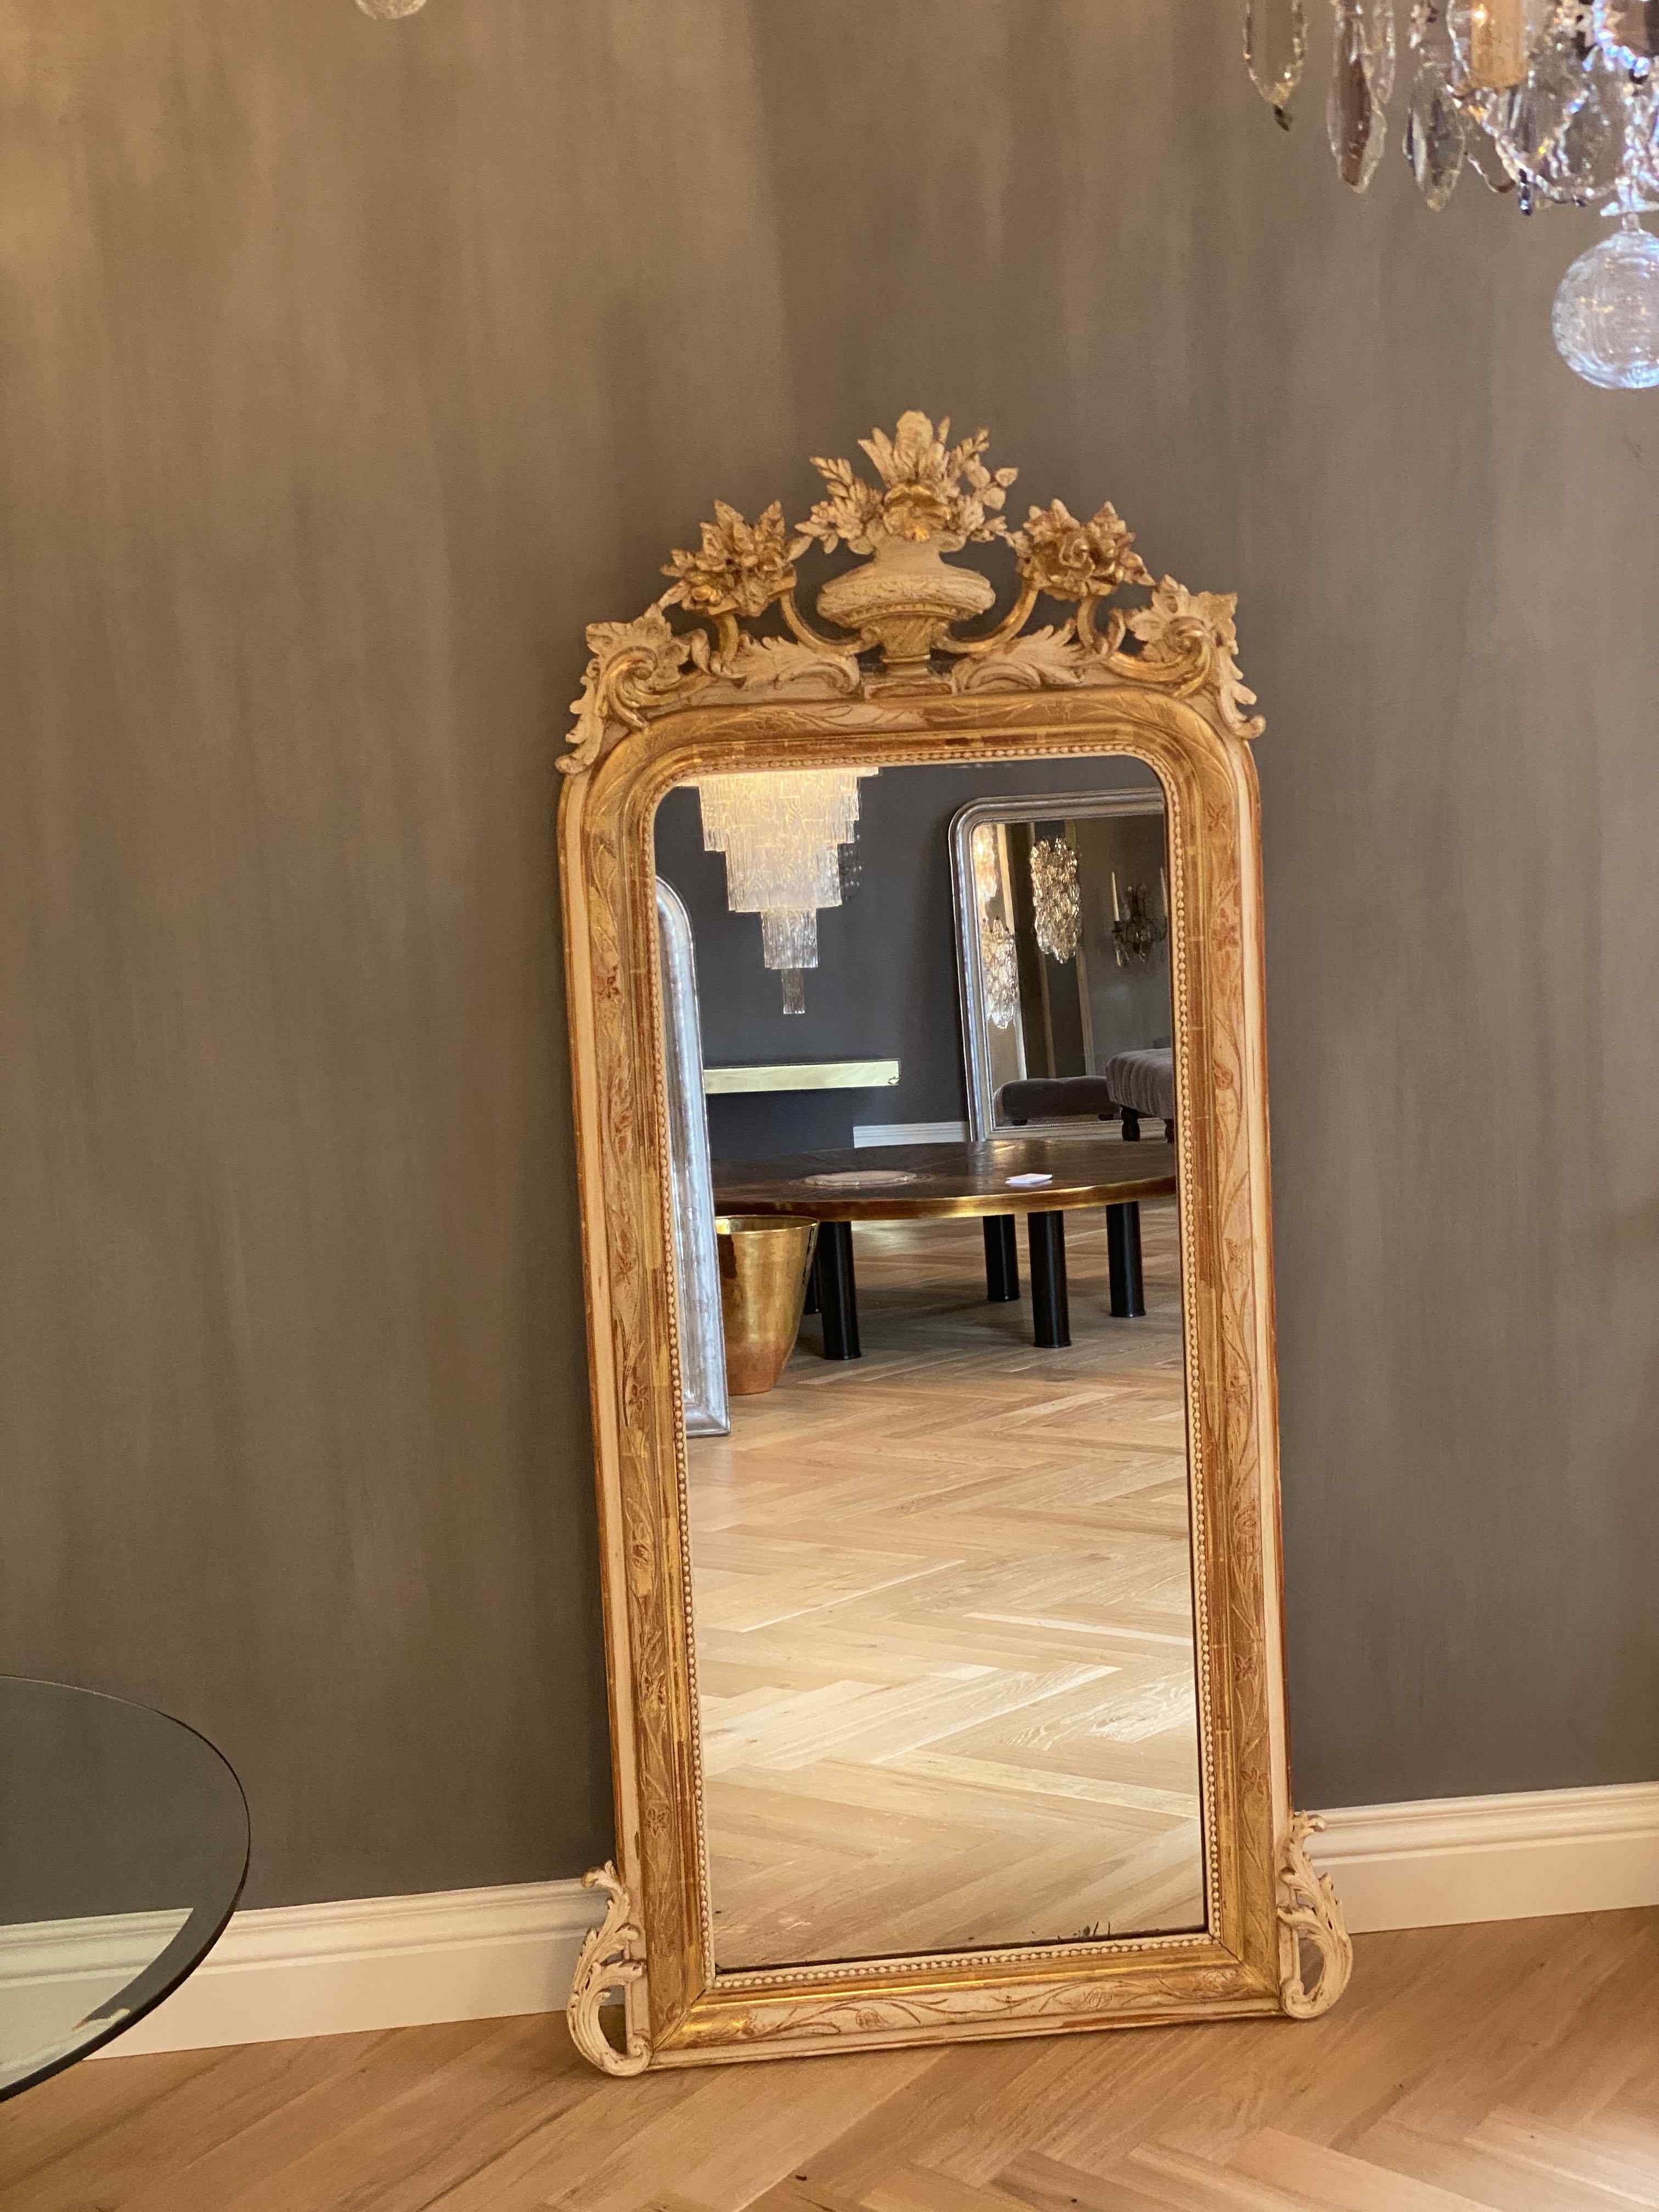 19th c. antique mirror with a crest